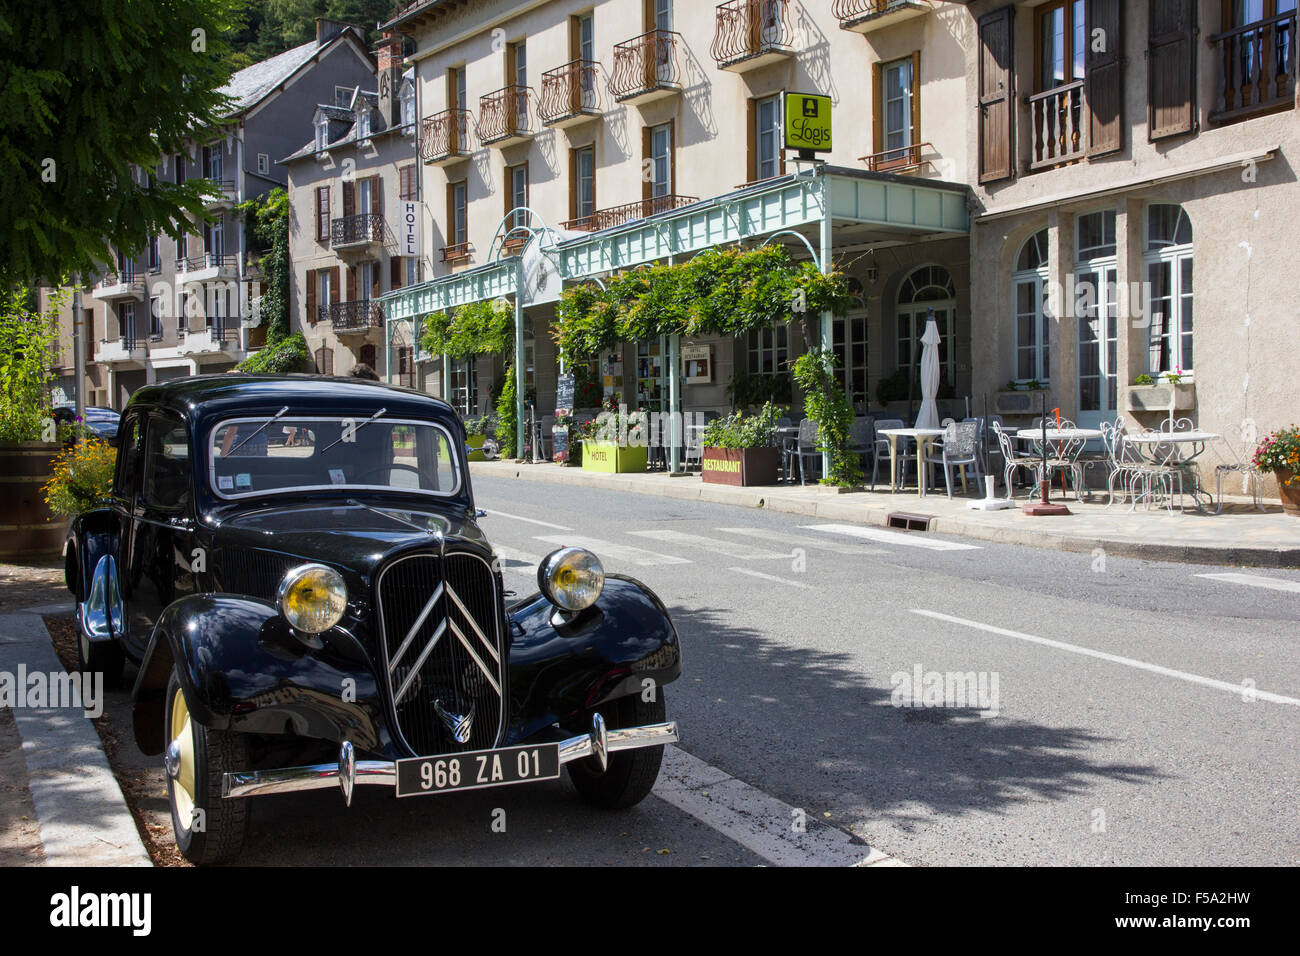 Citroen Traction Avant, famous front wheel drive car with monocoque body - Stock Image